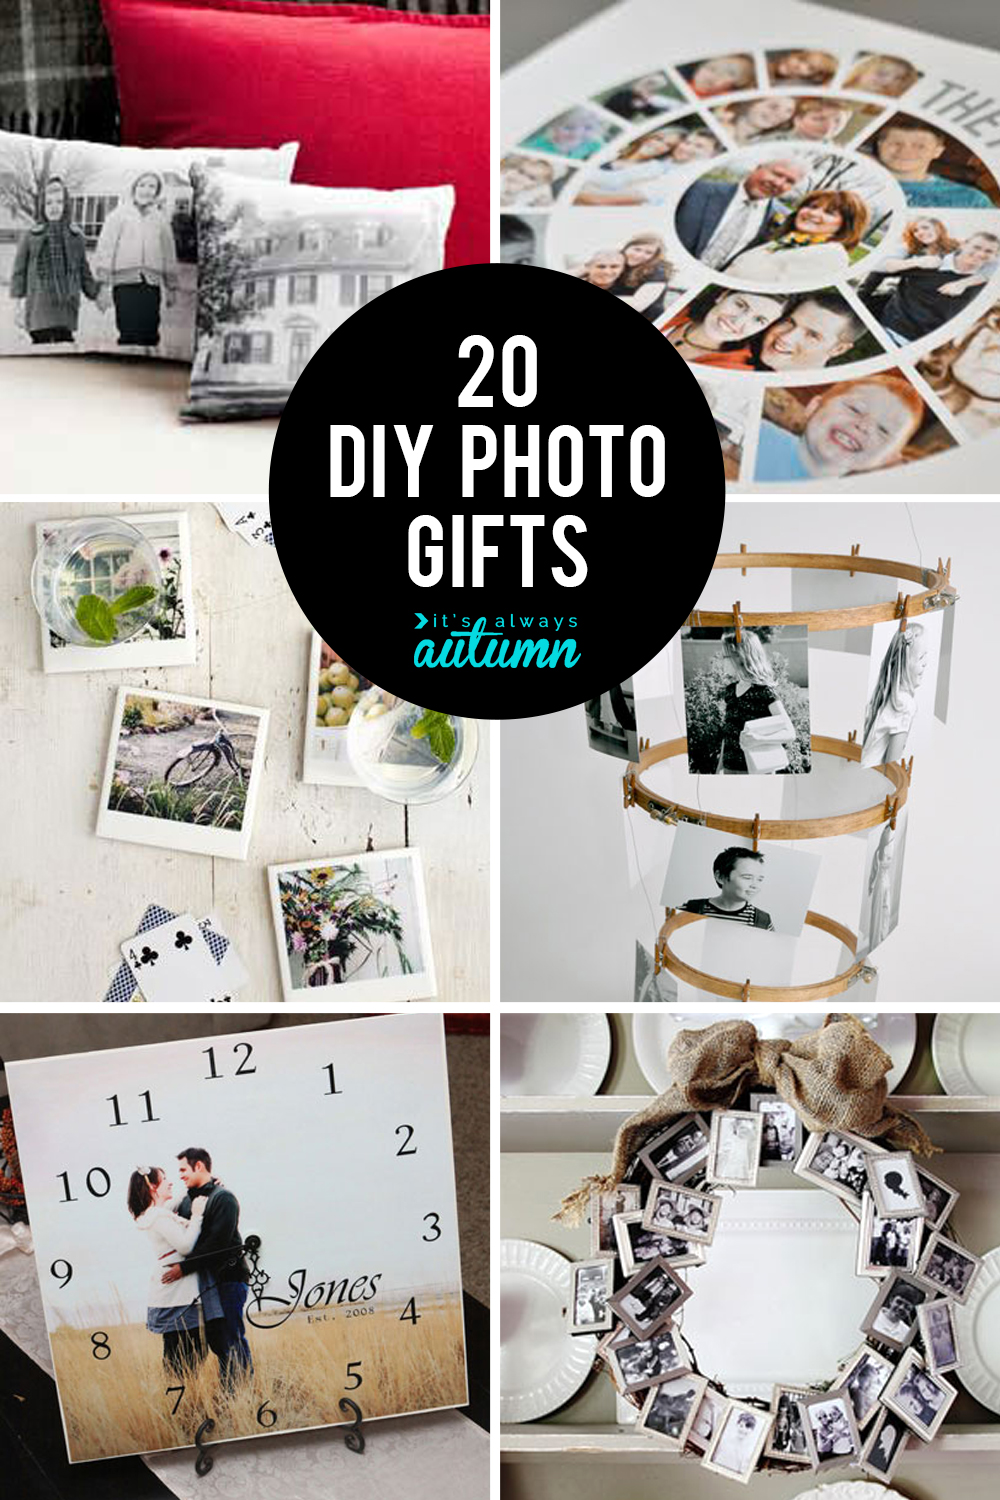 Lovable Photo Gift Ideas Coworkers Diy Photo Click Through Diy Photo Gifts Day Or Parents Diy Mors Day Gifts Wood Diy Mors Day Gifts gifts Diy Mothers Day Gifts